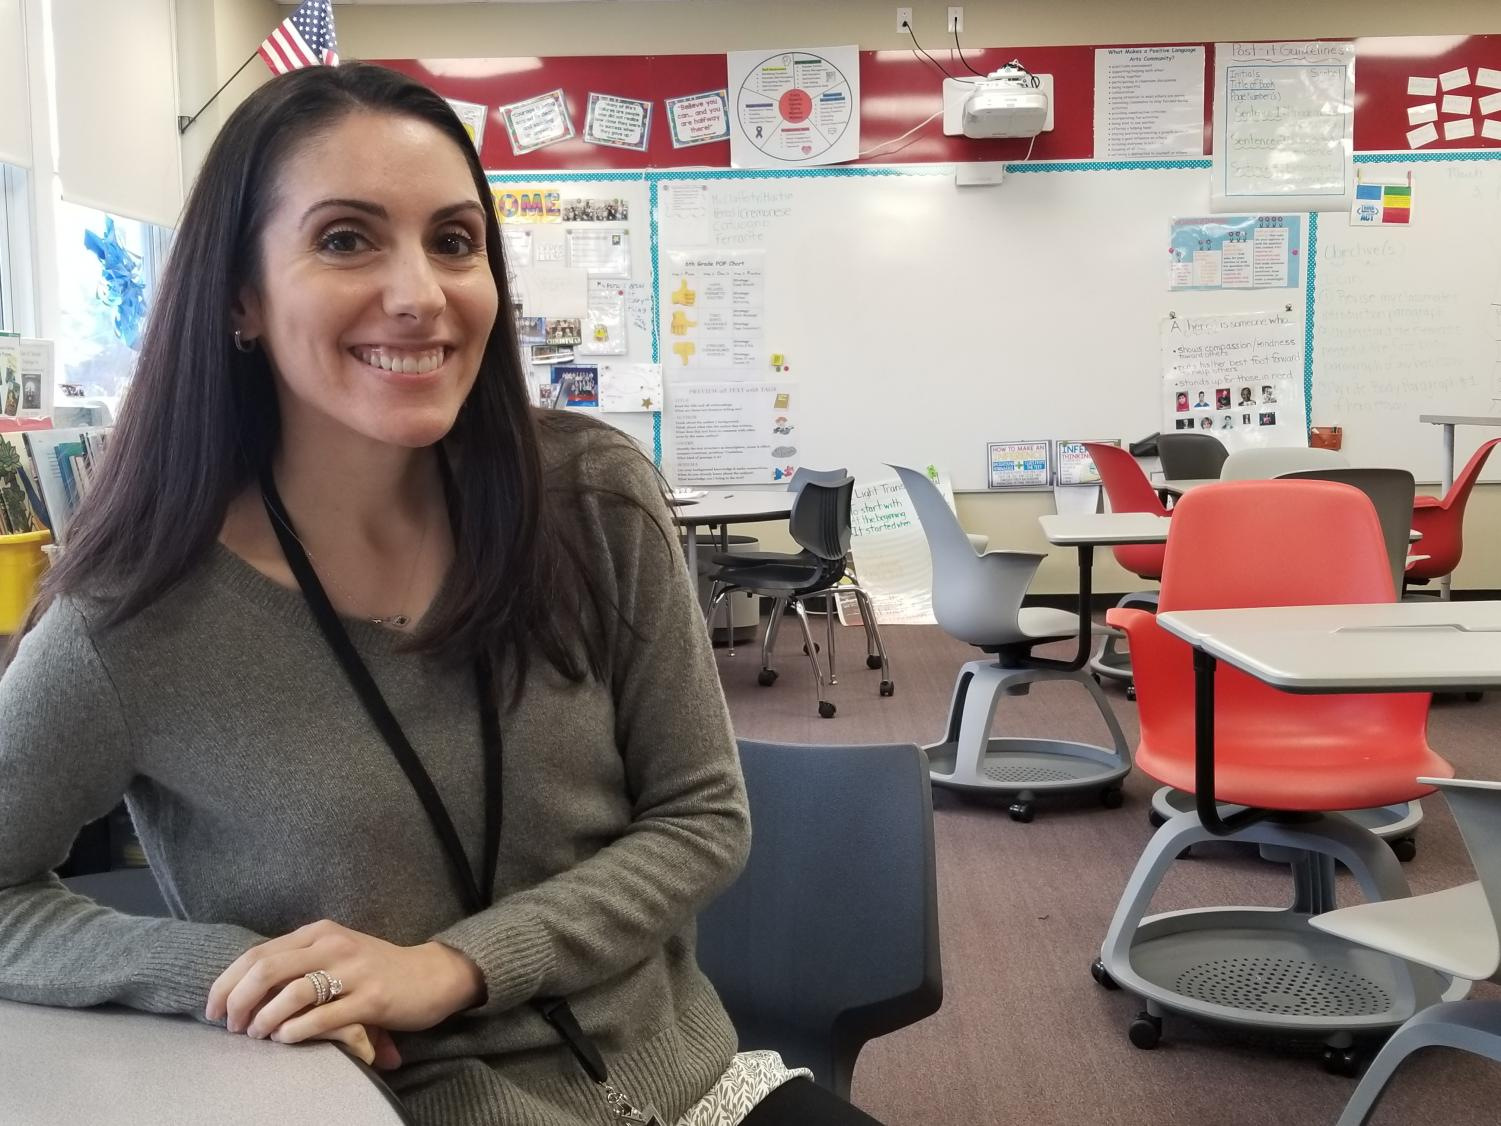 Kate Cremonese is back after maternity leave. She is excited to meet all her new students.